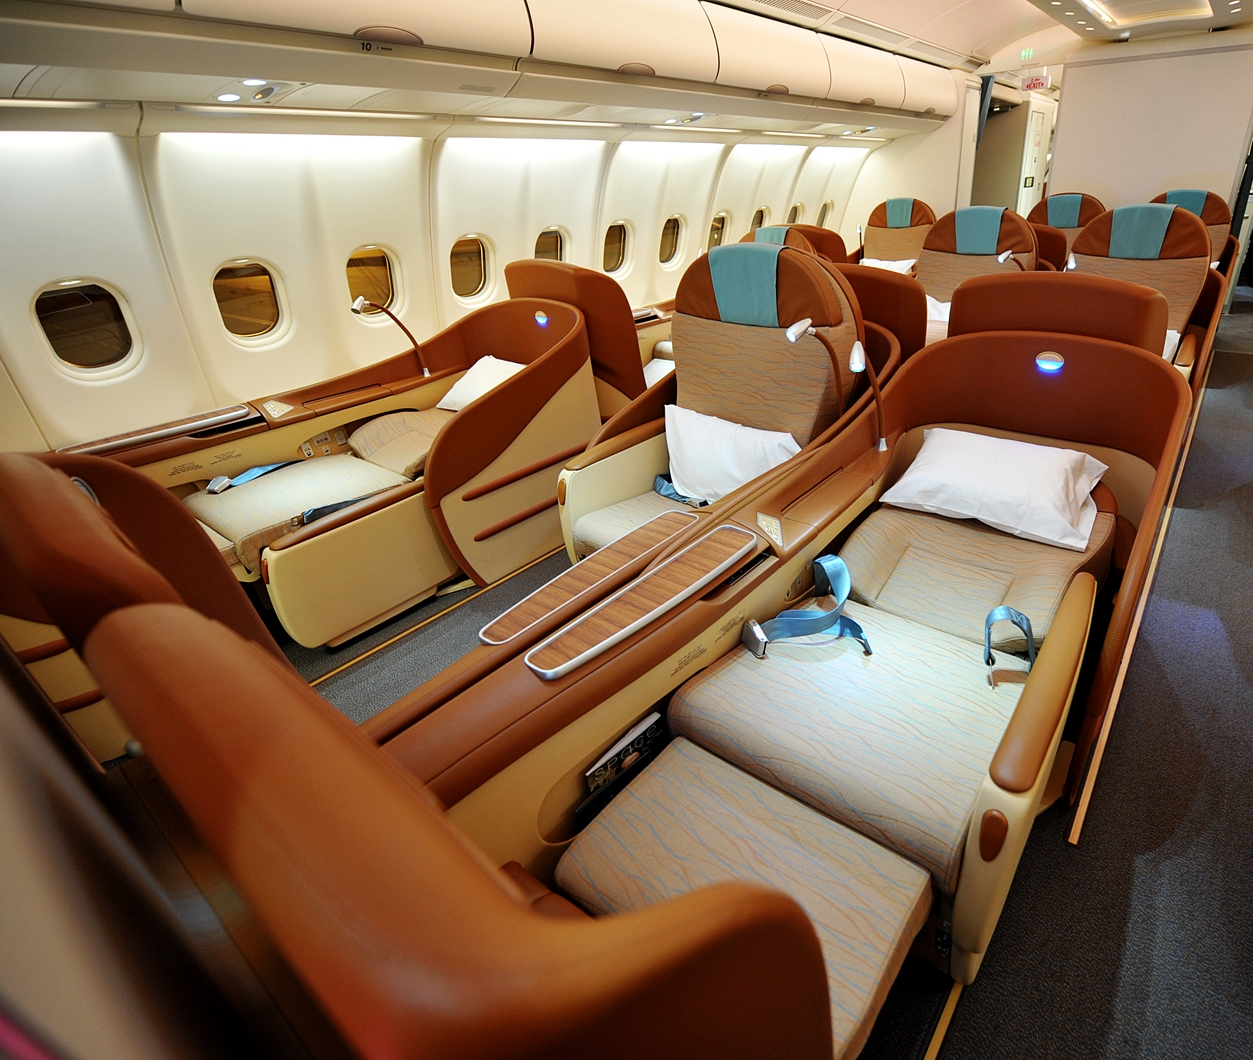 Oman-Air-Business-Class-Seats-A330-200